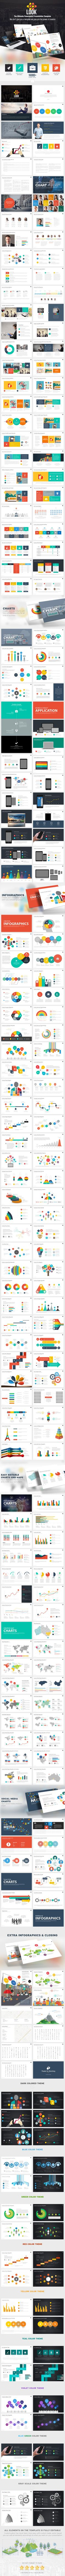 116 Best Powerpoint inspiration images in 2018 | Editorial